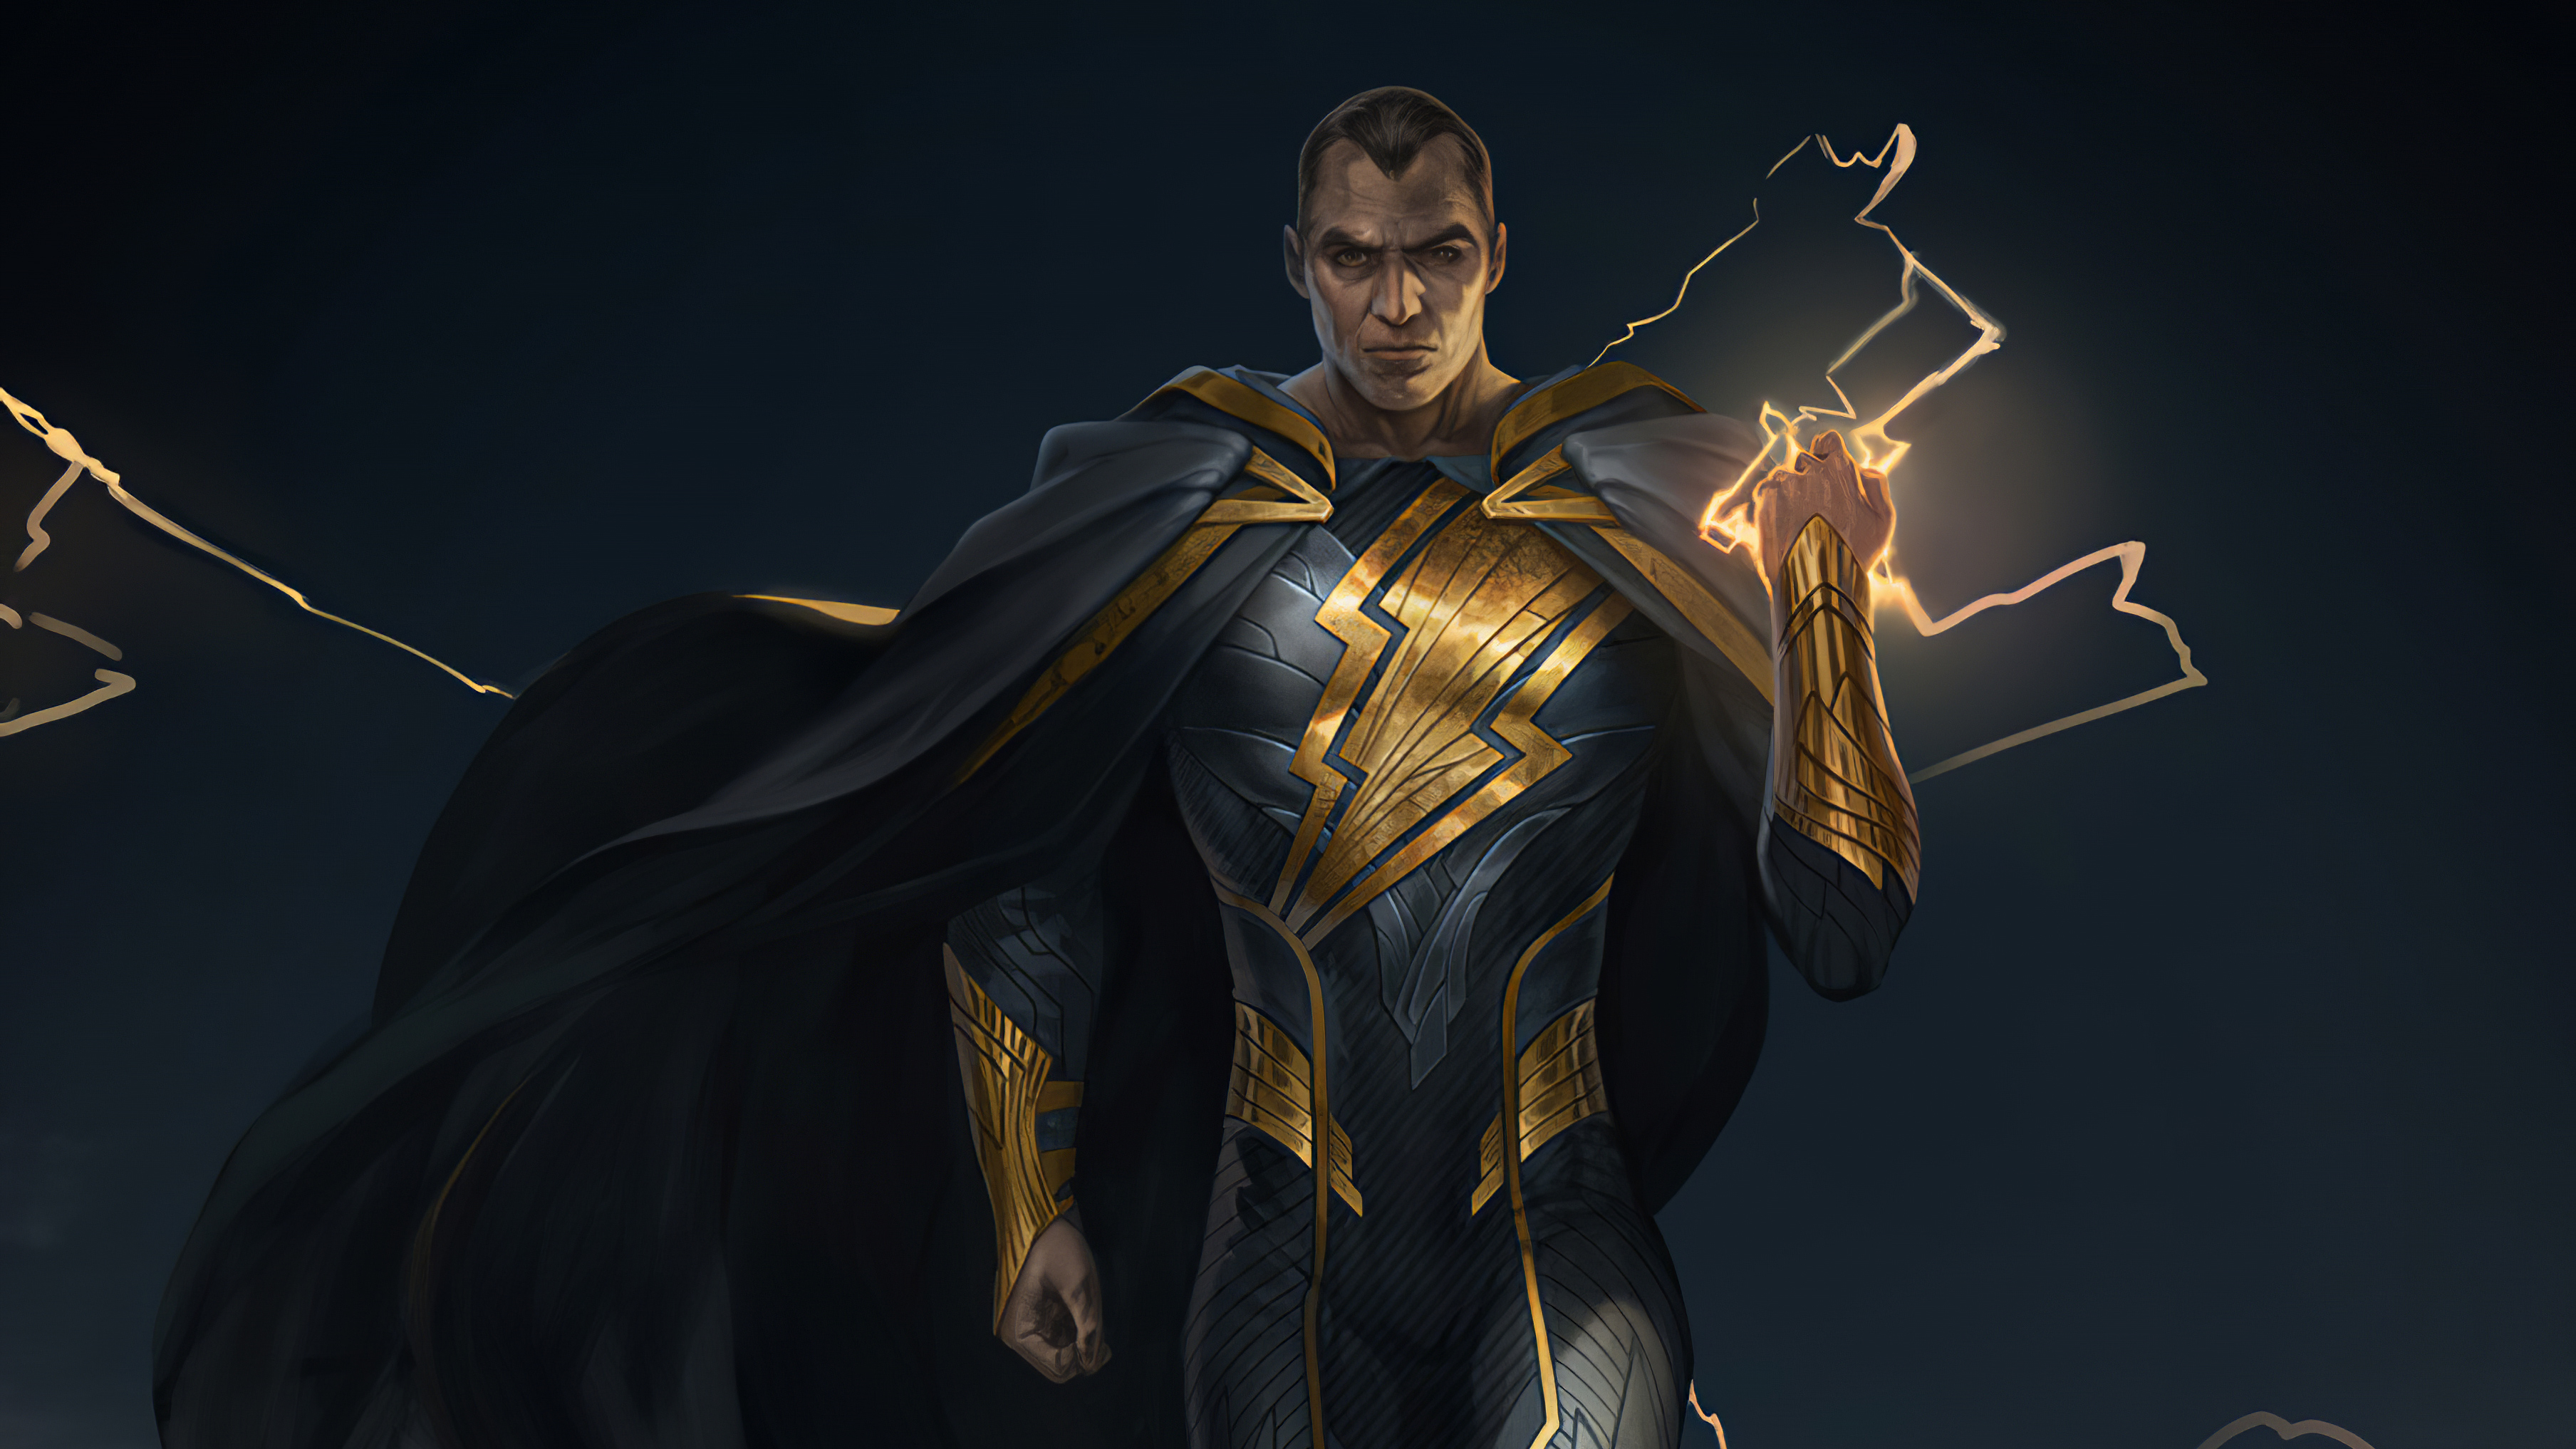 1336x768 black adam injustice 2 hd laptop wallpaper hd games 4k wallpapers images photos and background wallpapersden